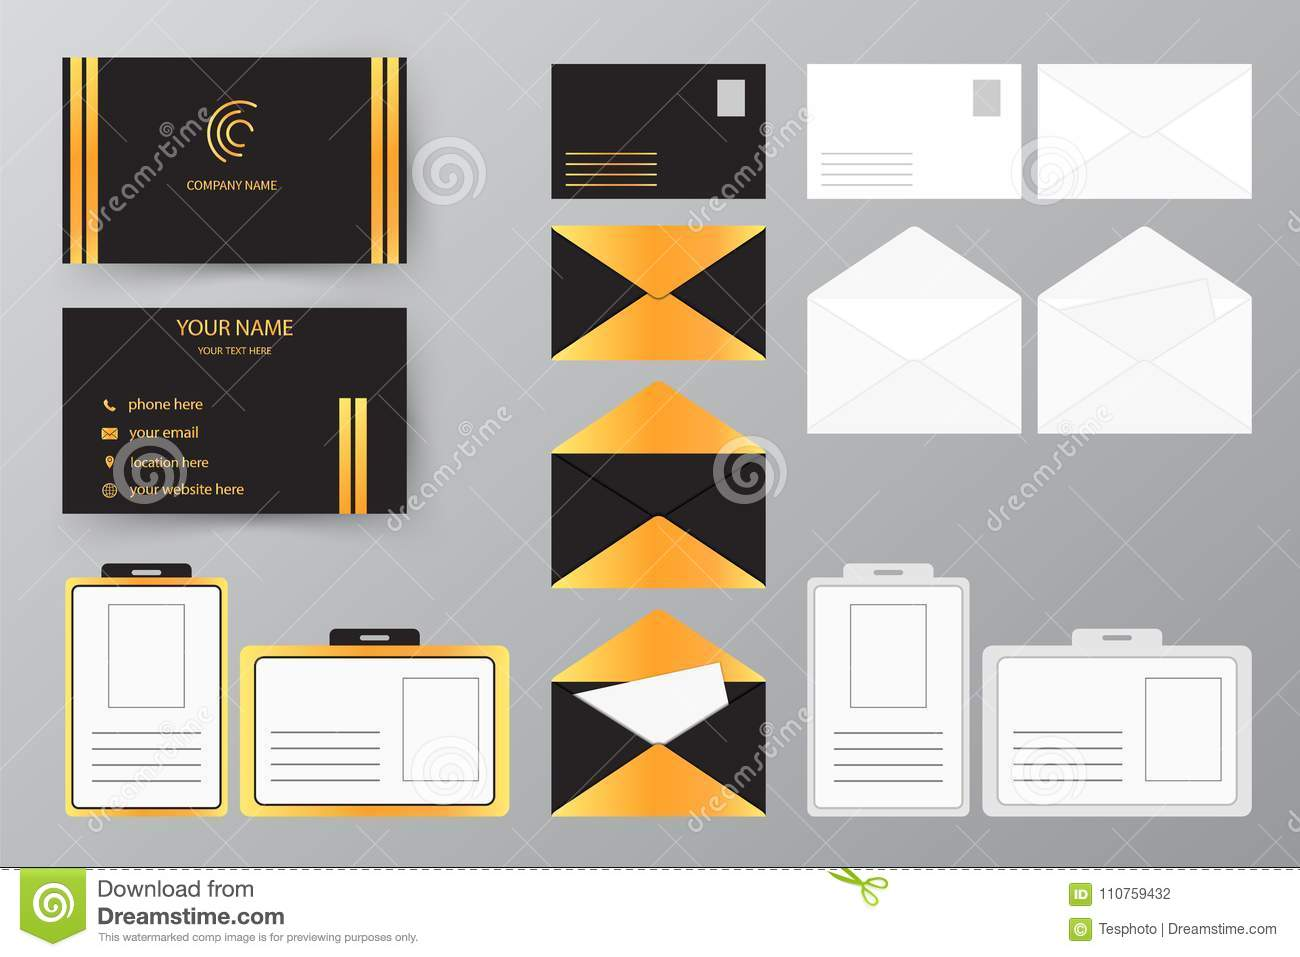 Collection Personnelle De Style Conception Dillustration Vecteur Pour Des Affaires Et Lusage Personnel Ensemble Carte Visite Professionnelle